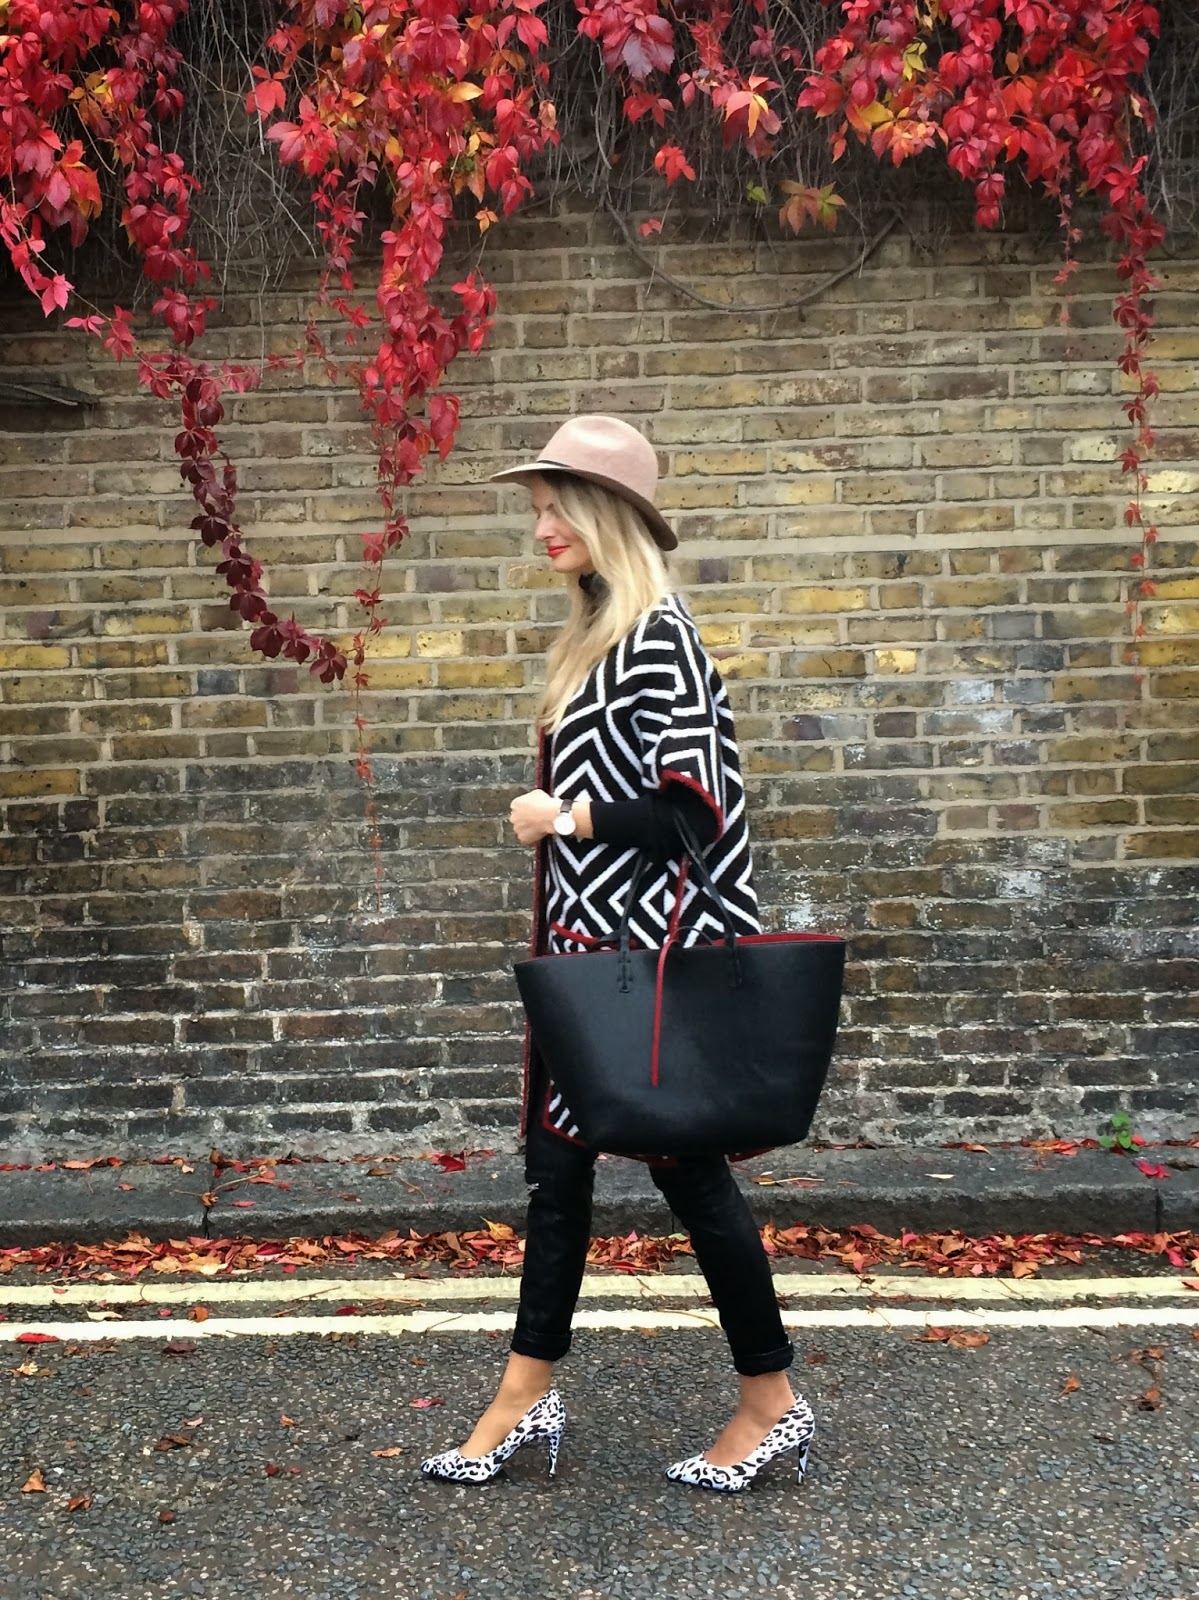 hat, fedora hat, topshop hat, camel hat, poncho, cape, aztec print poncho, zara reversible contrast shopper, zara shopper, black shopper bag, asos heels, asos shoes, street style, london street style, leather pants, zara leather pants, aw14, lookbook, fashion blogger, blonde fashion blogger, long hair